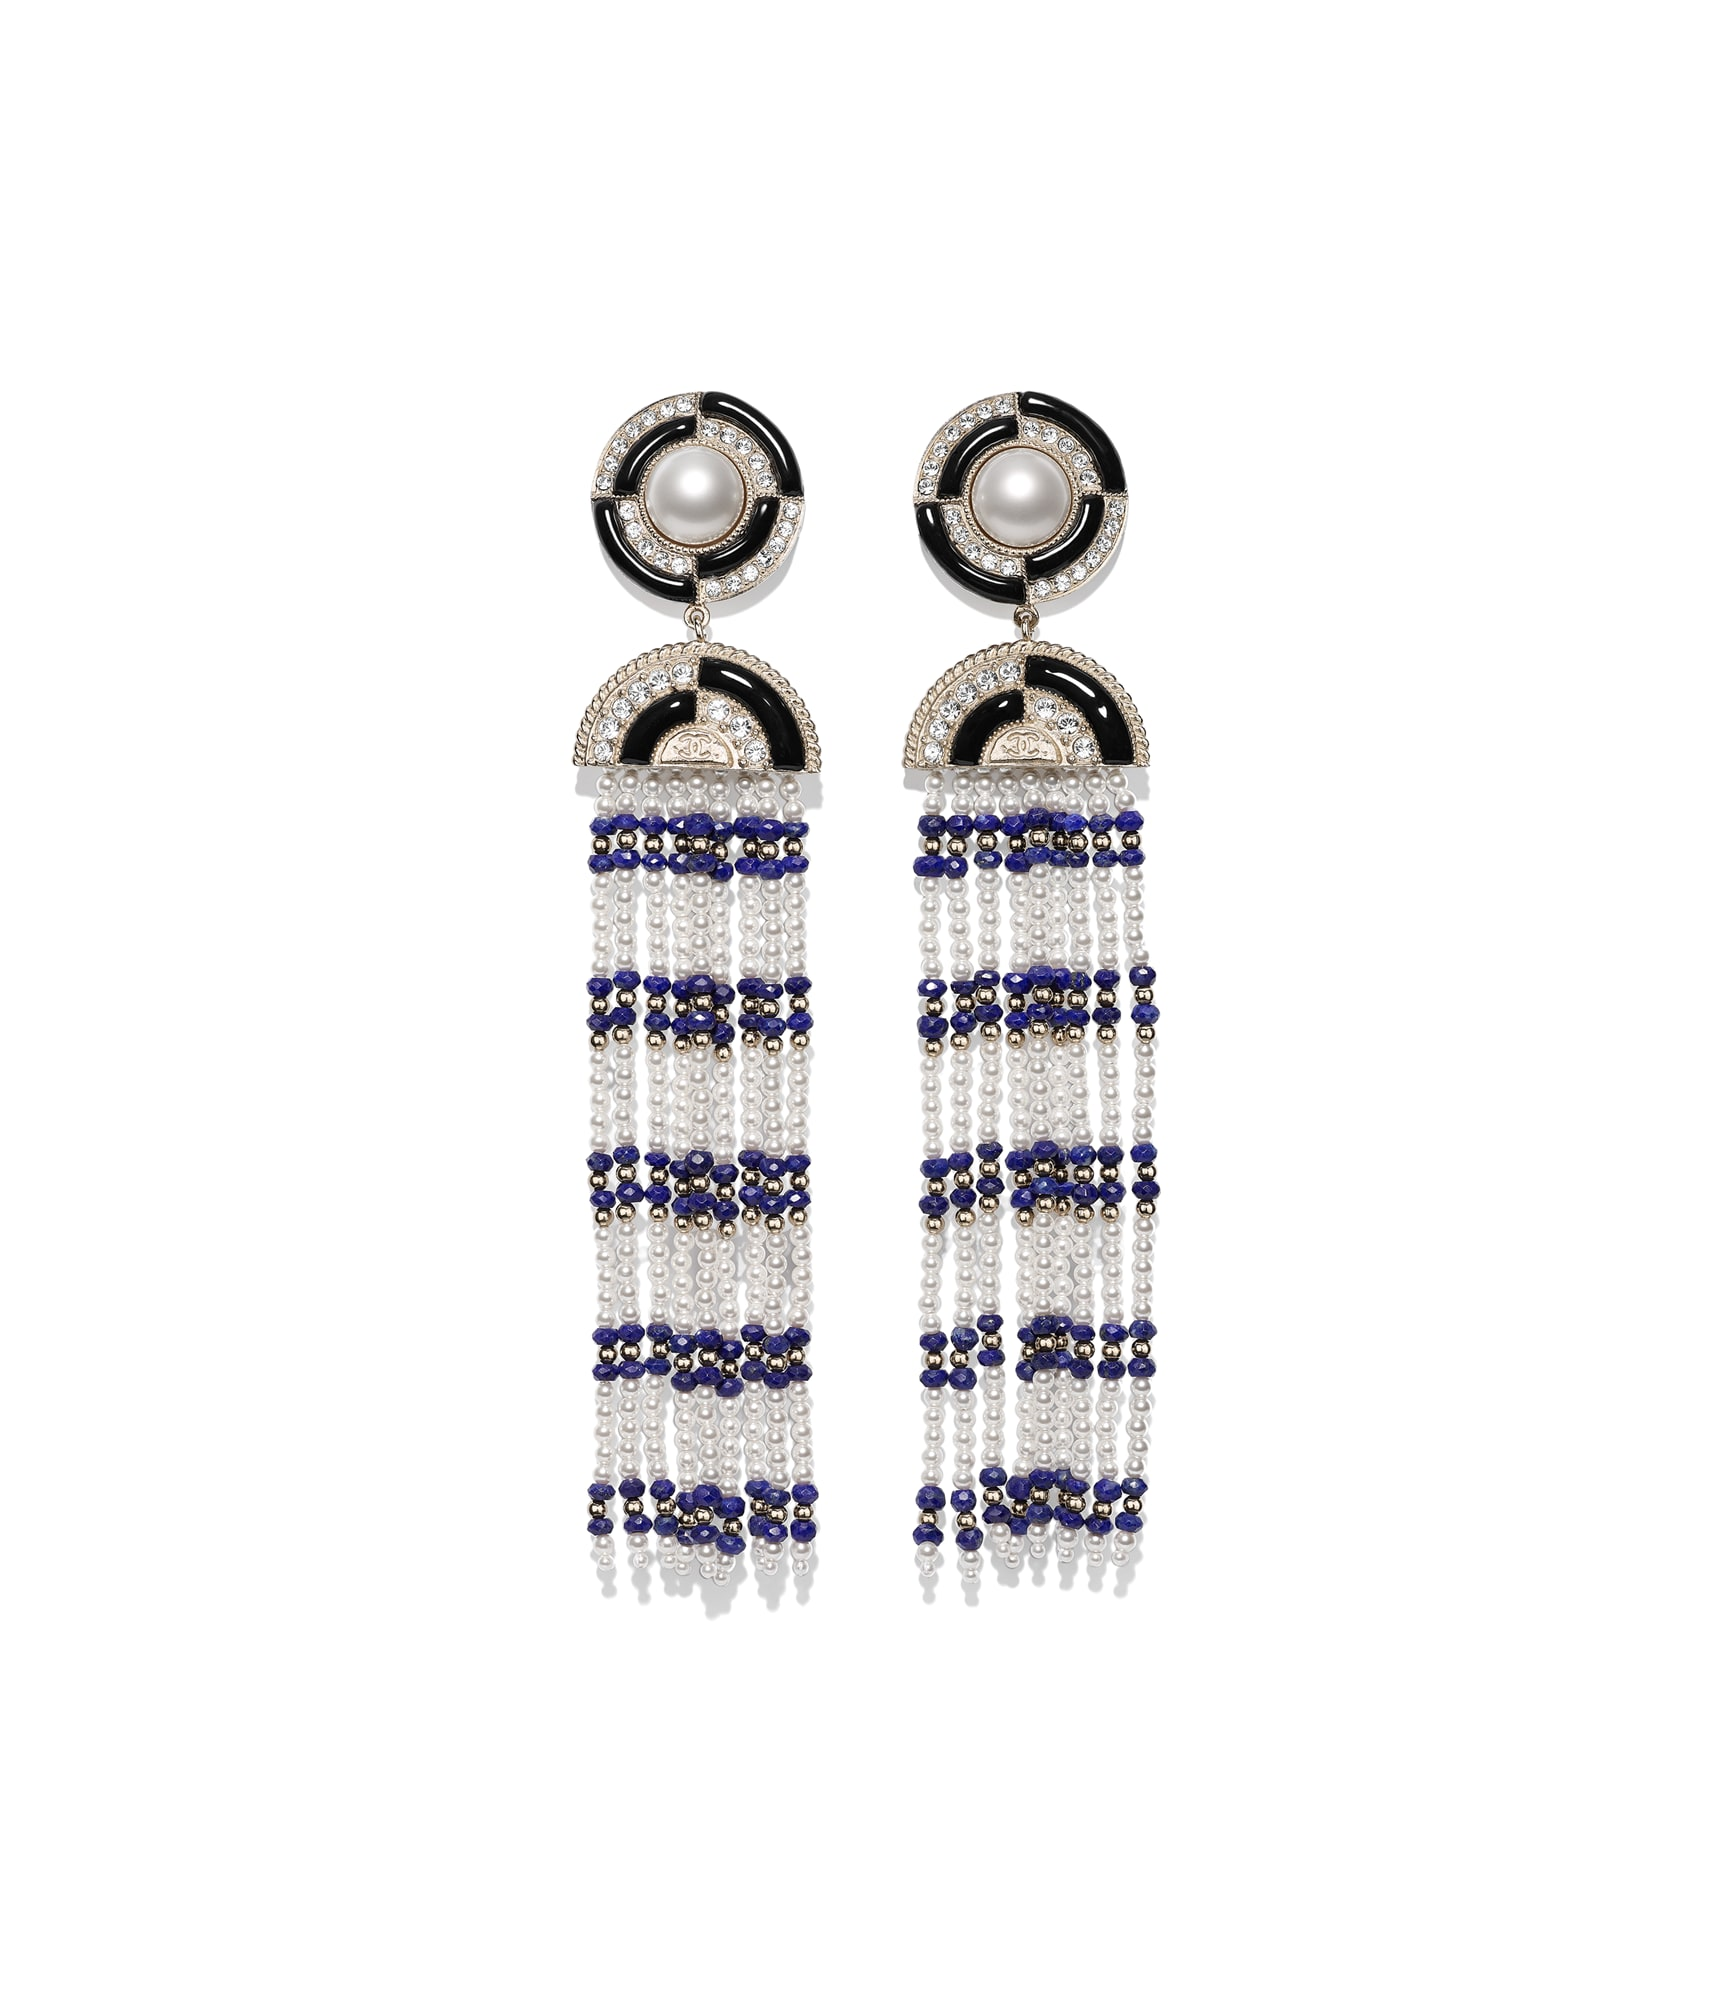 85996c3ca Earrings - Costume Jewellery - CHANEL